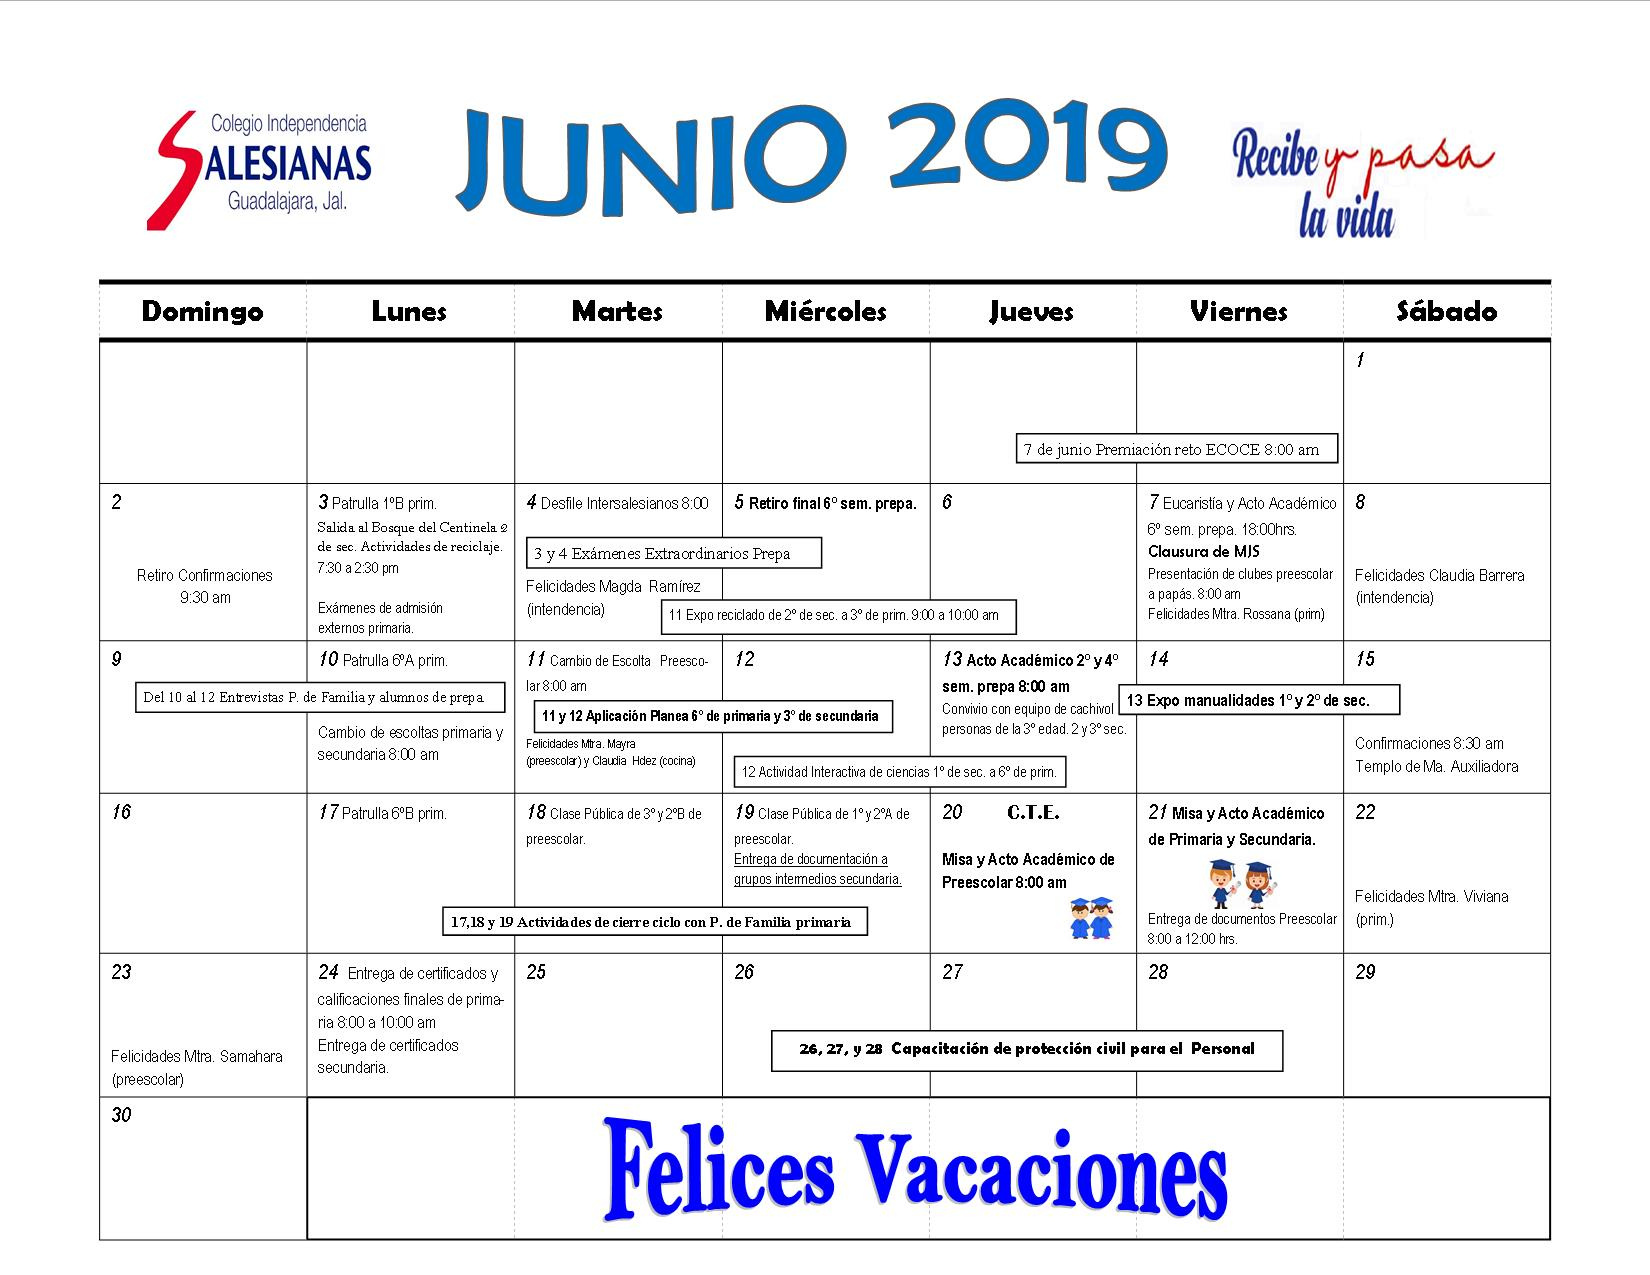 Junio 2019 Calendario.Colegio Independencia A C Calendario Junio 2019